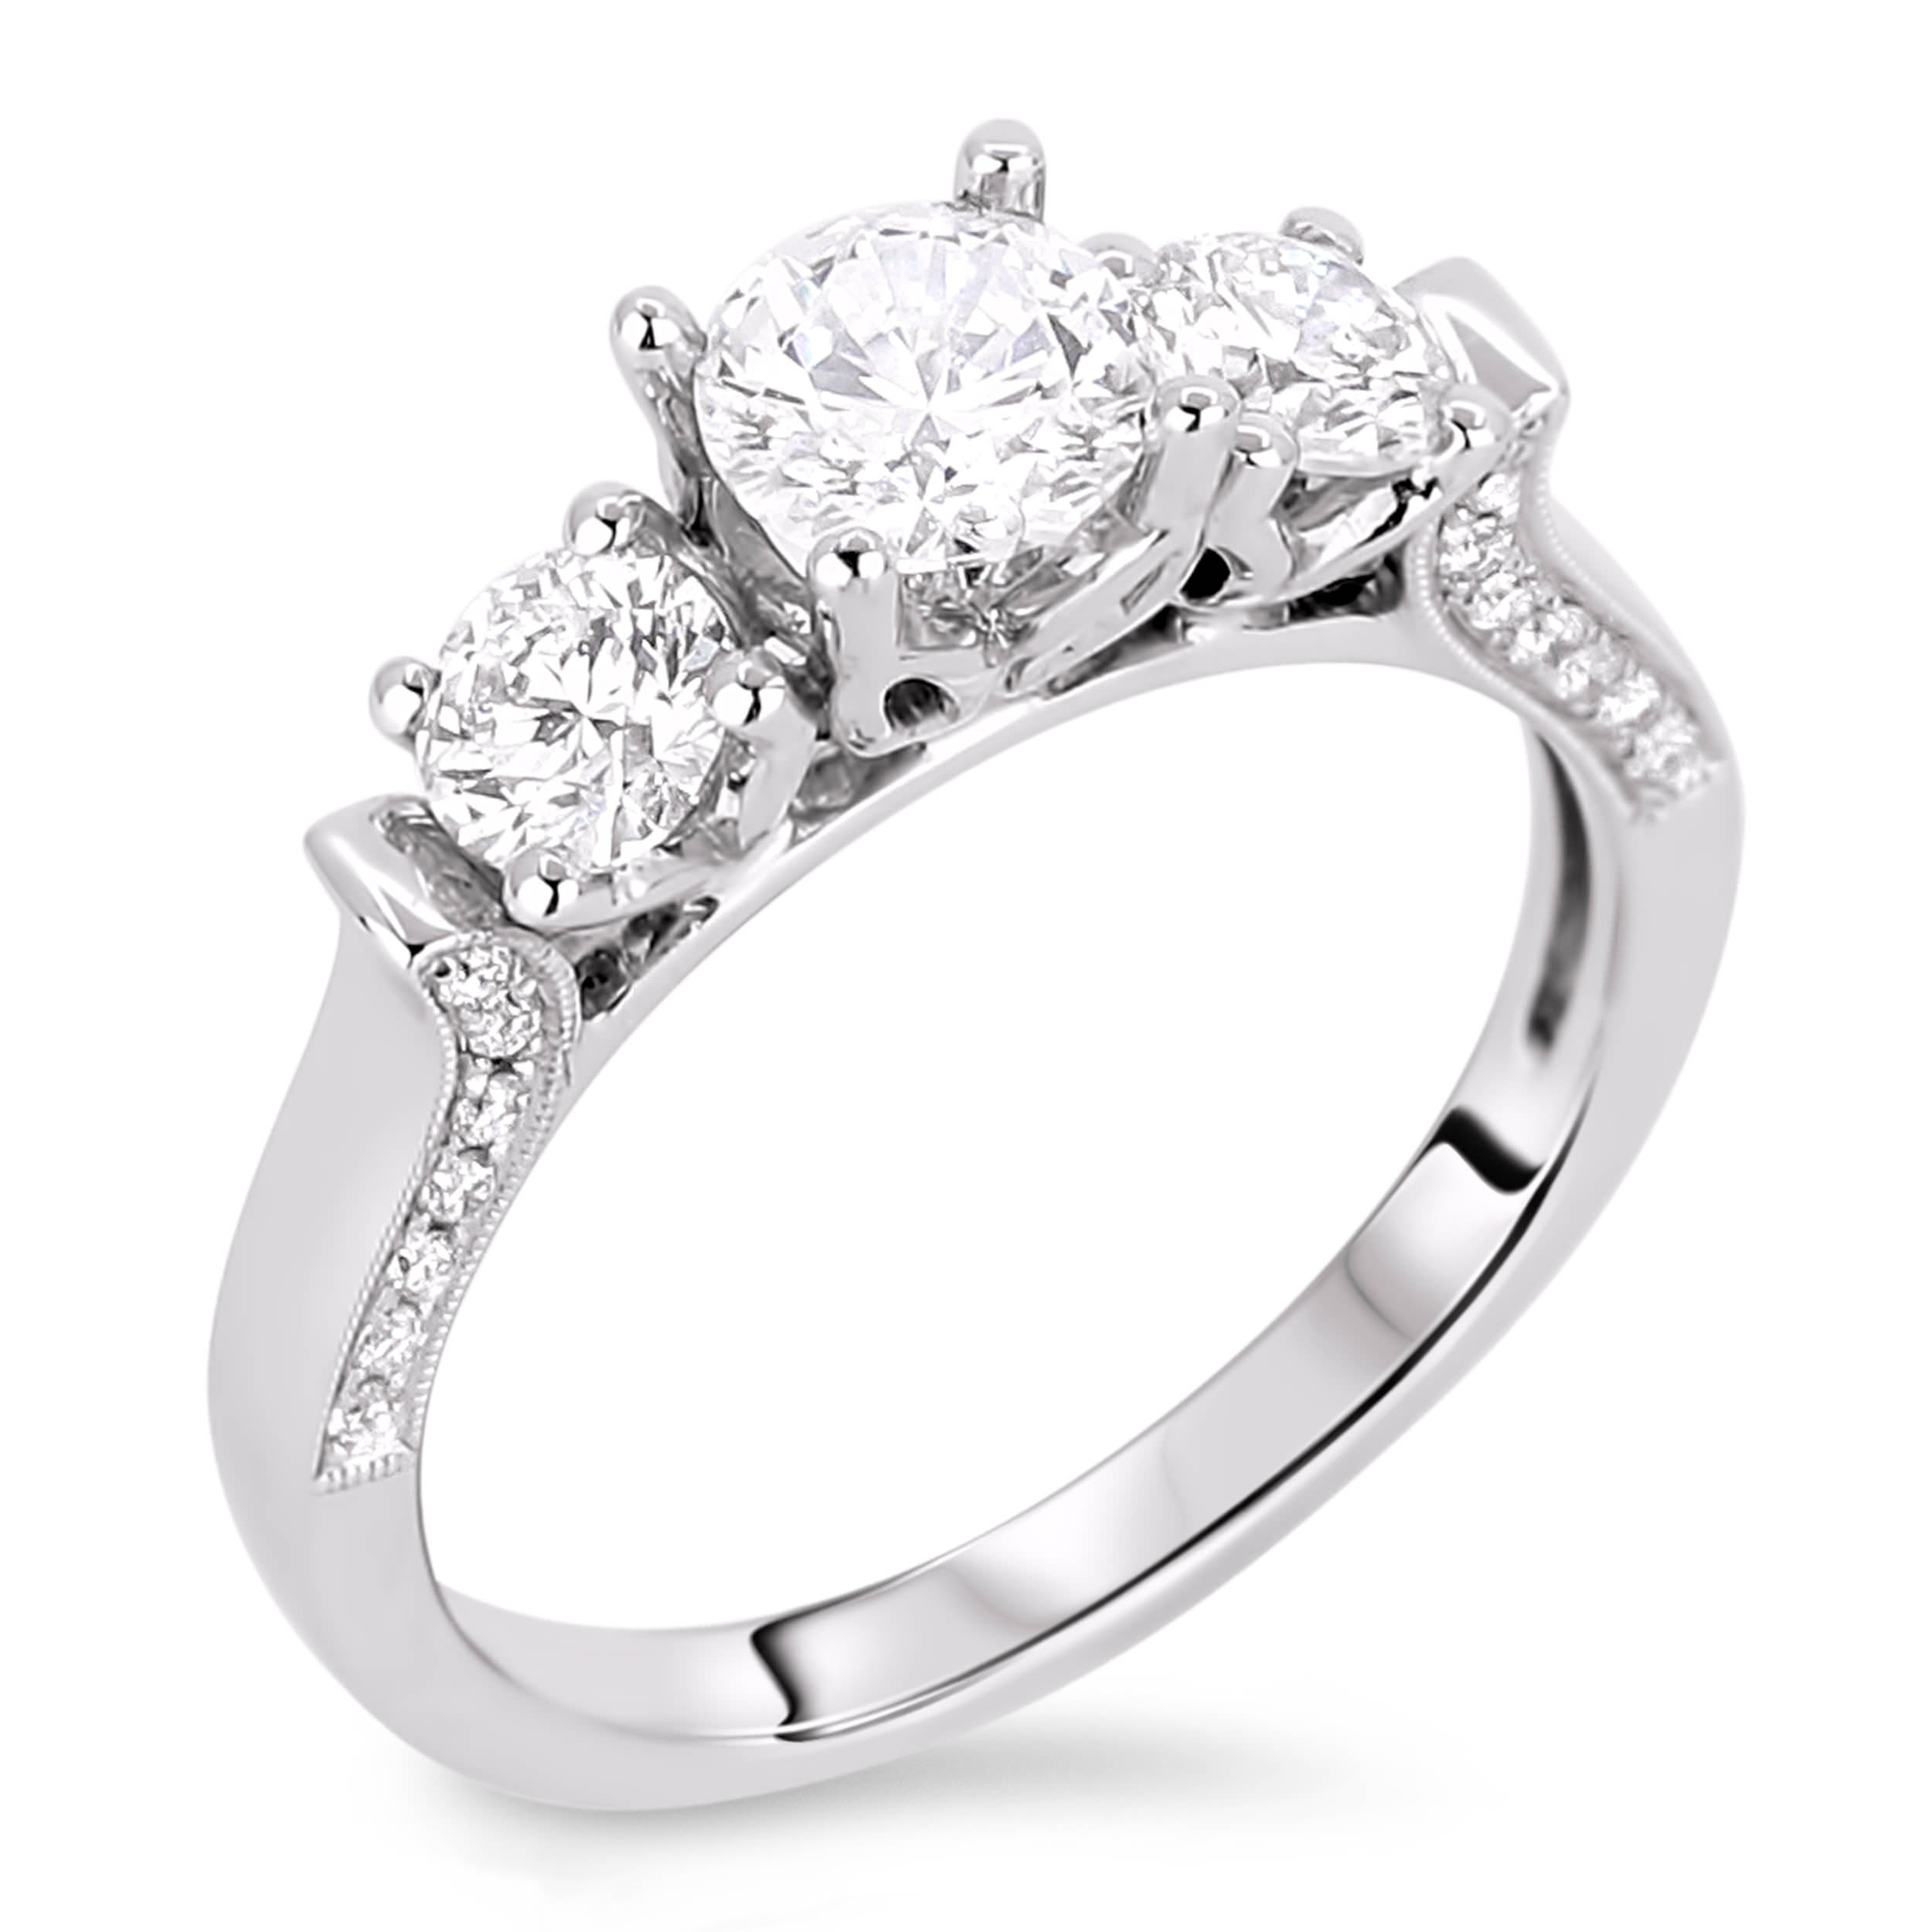 david rings gent wedding dora keefe jewellers